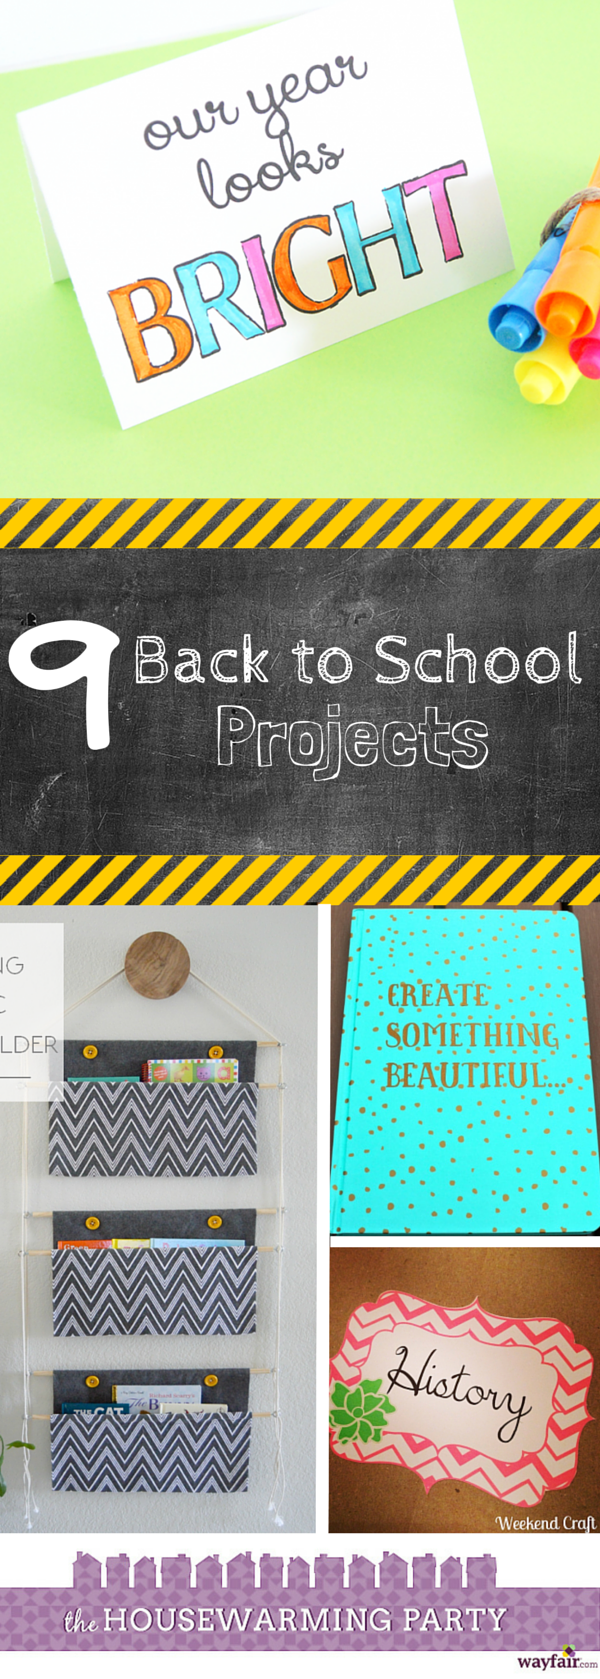 9 Back to School Projects